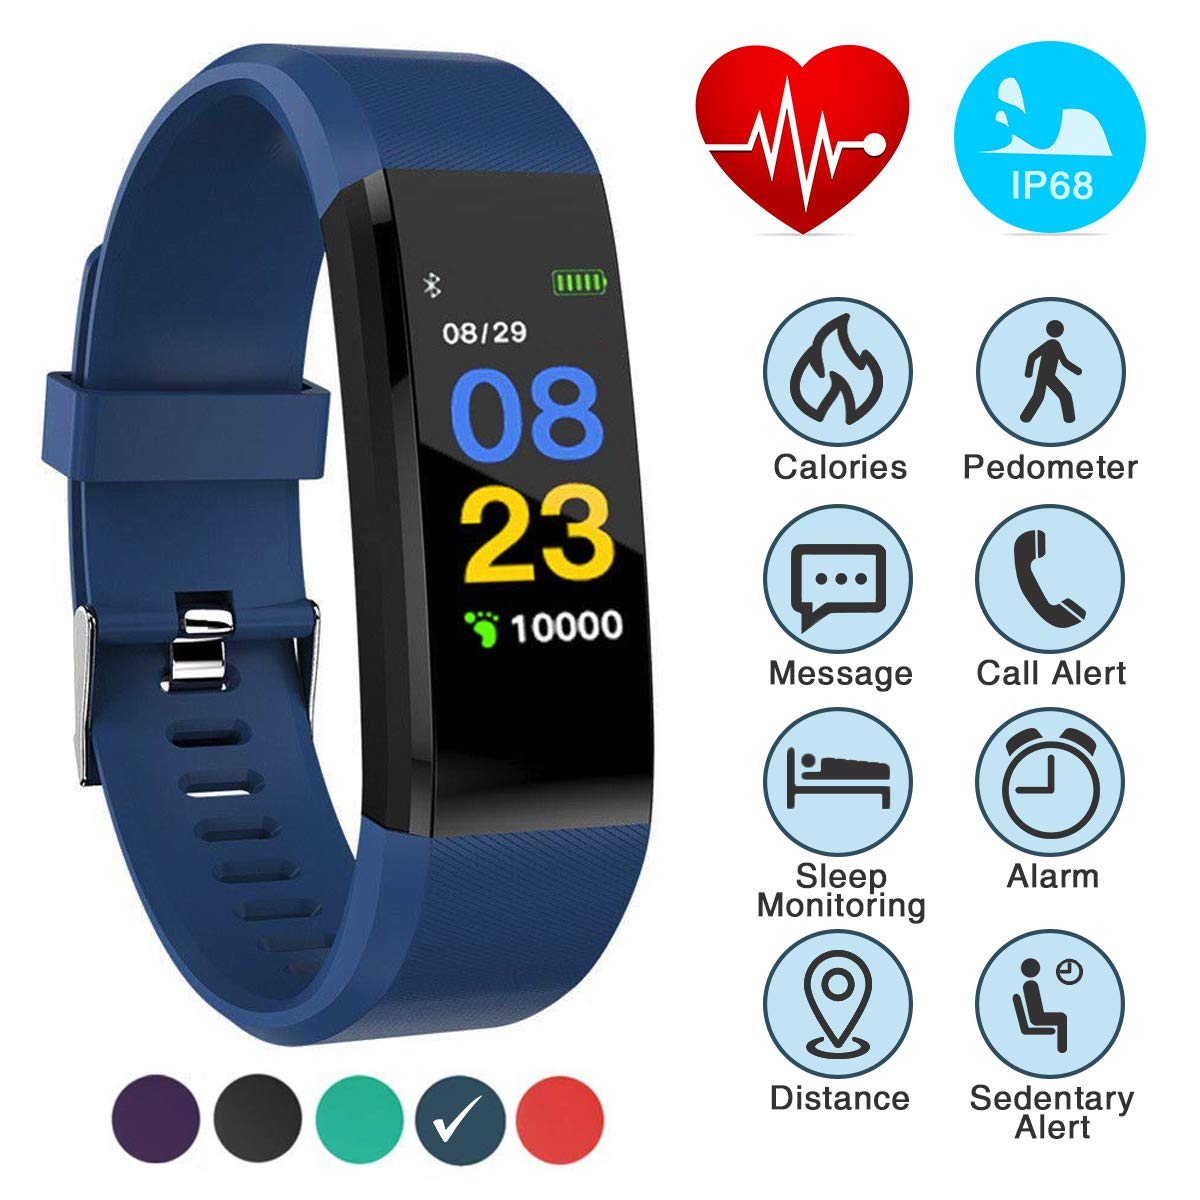 Burn-Rate Fitness Tracker Heart Rate Monitor - Smart Watches for Women & Men, Kids Color Smart Watch Fit Bracelet. Reloj Inteligente band Pedometer, Waterproof, Distance Activity bit for Android & iOS by Burn-Rate Fitness 115plus (Image #2)